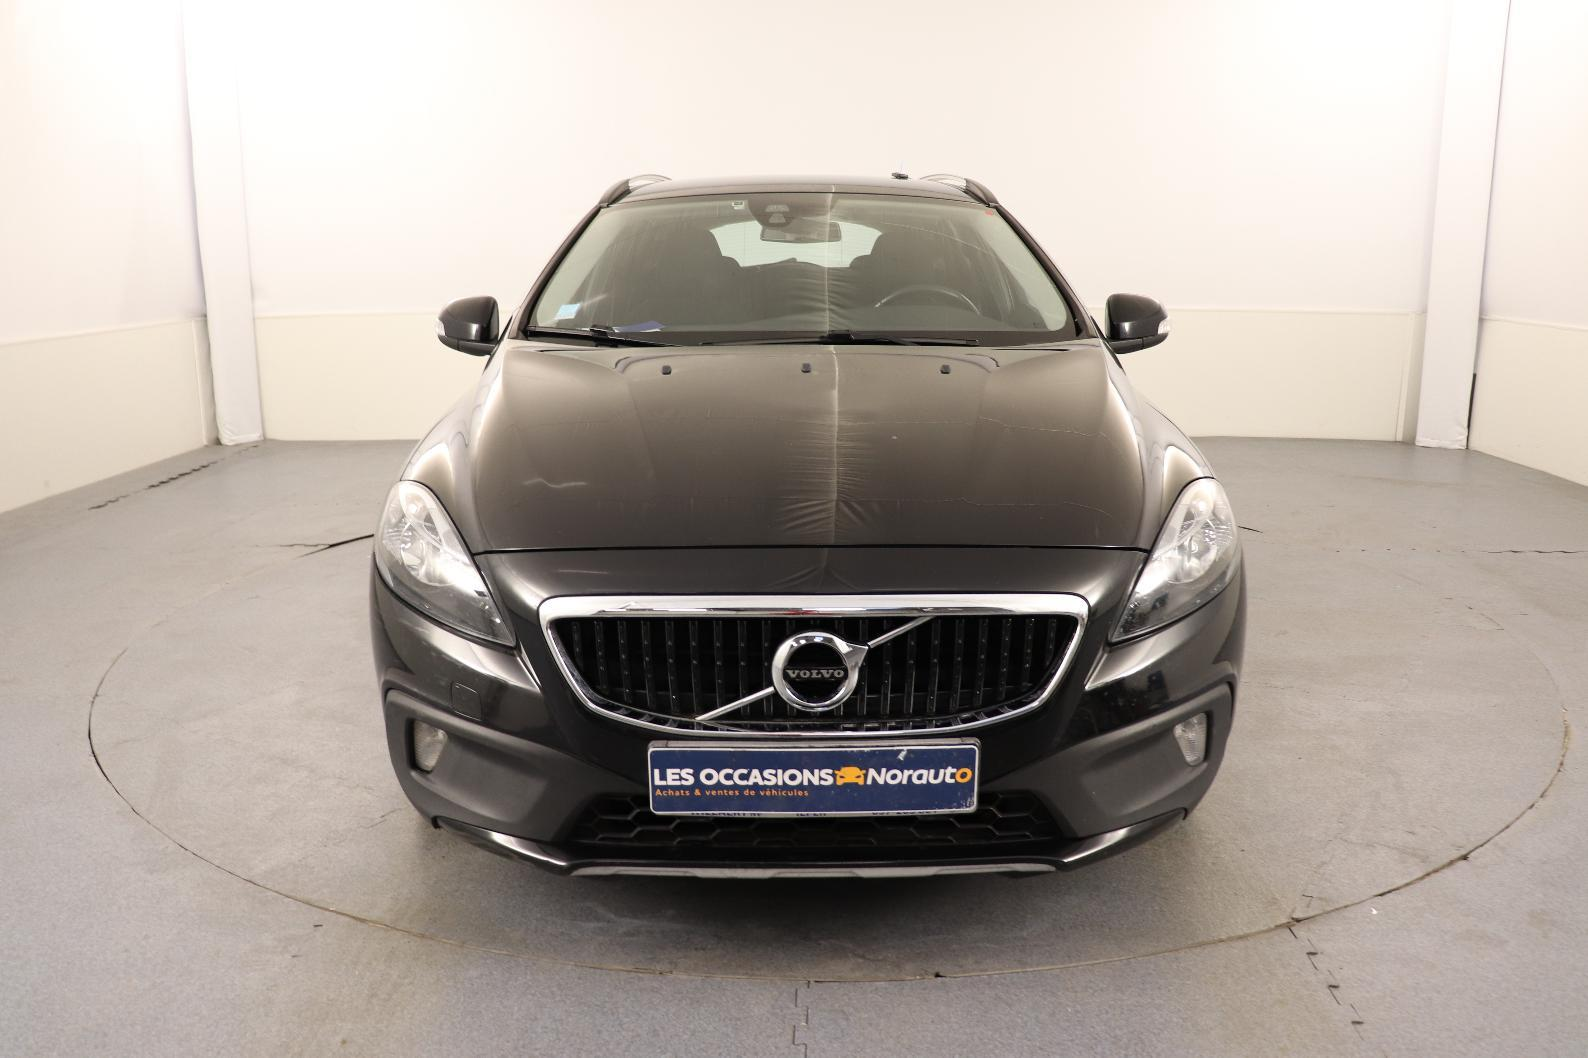 VOLVO V40 CROSS COUNTRY BUSINESS V40 Cross Country D2 120 Geartronic Momentum Business